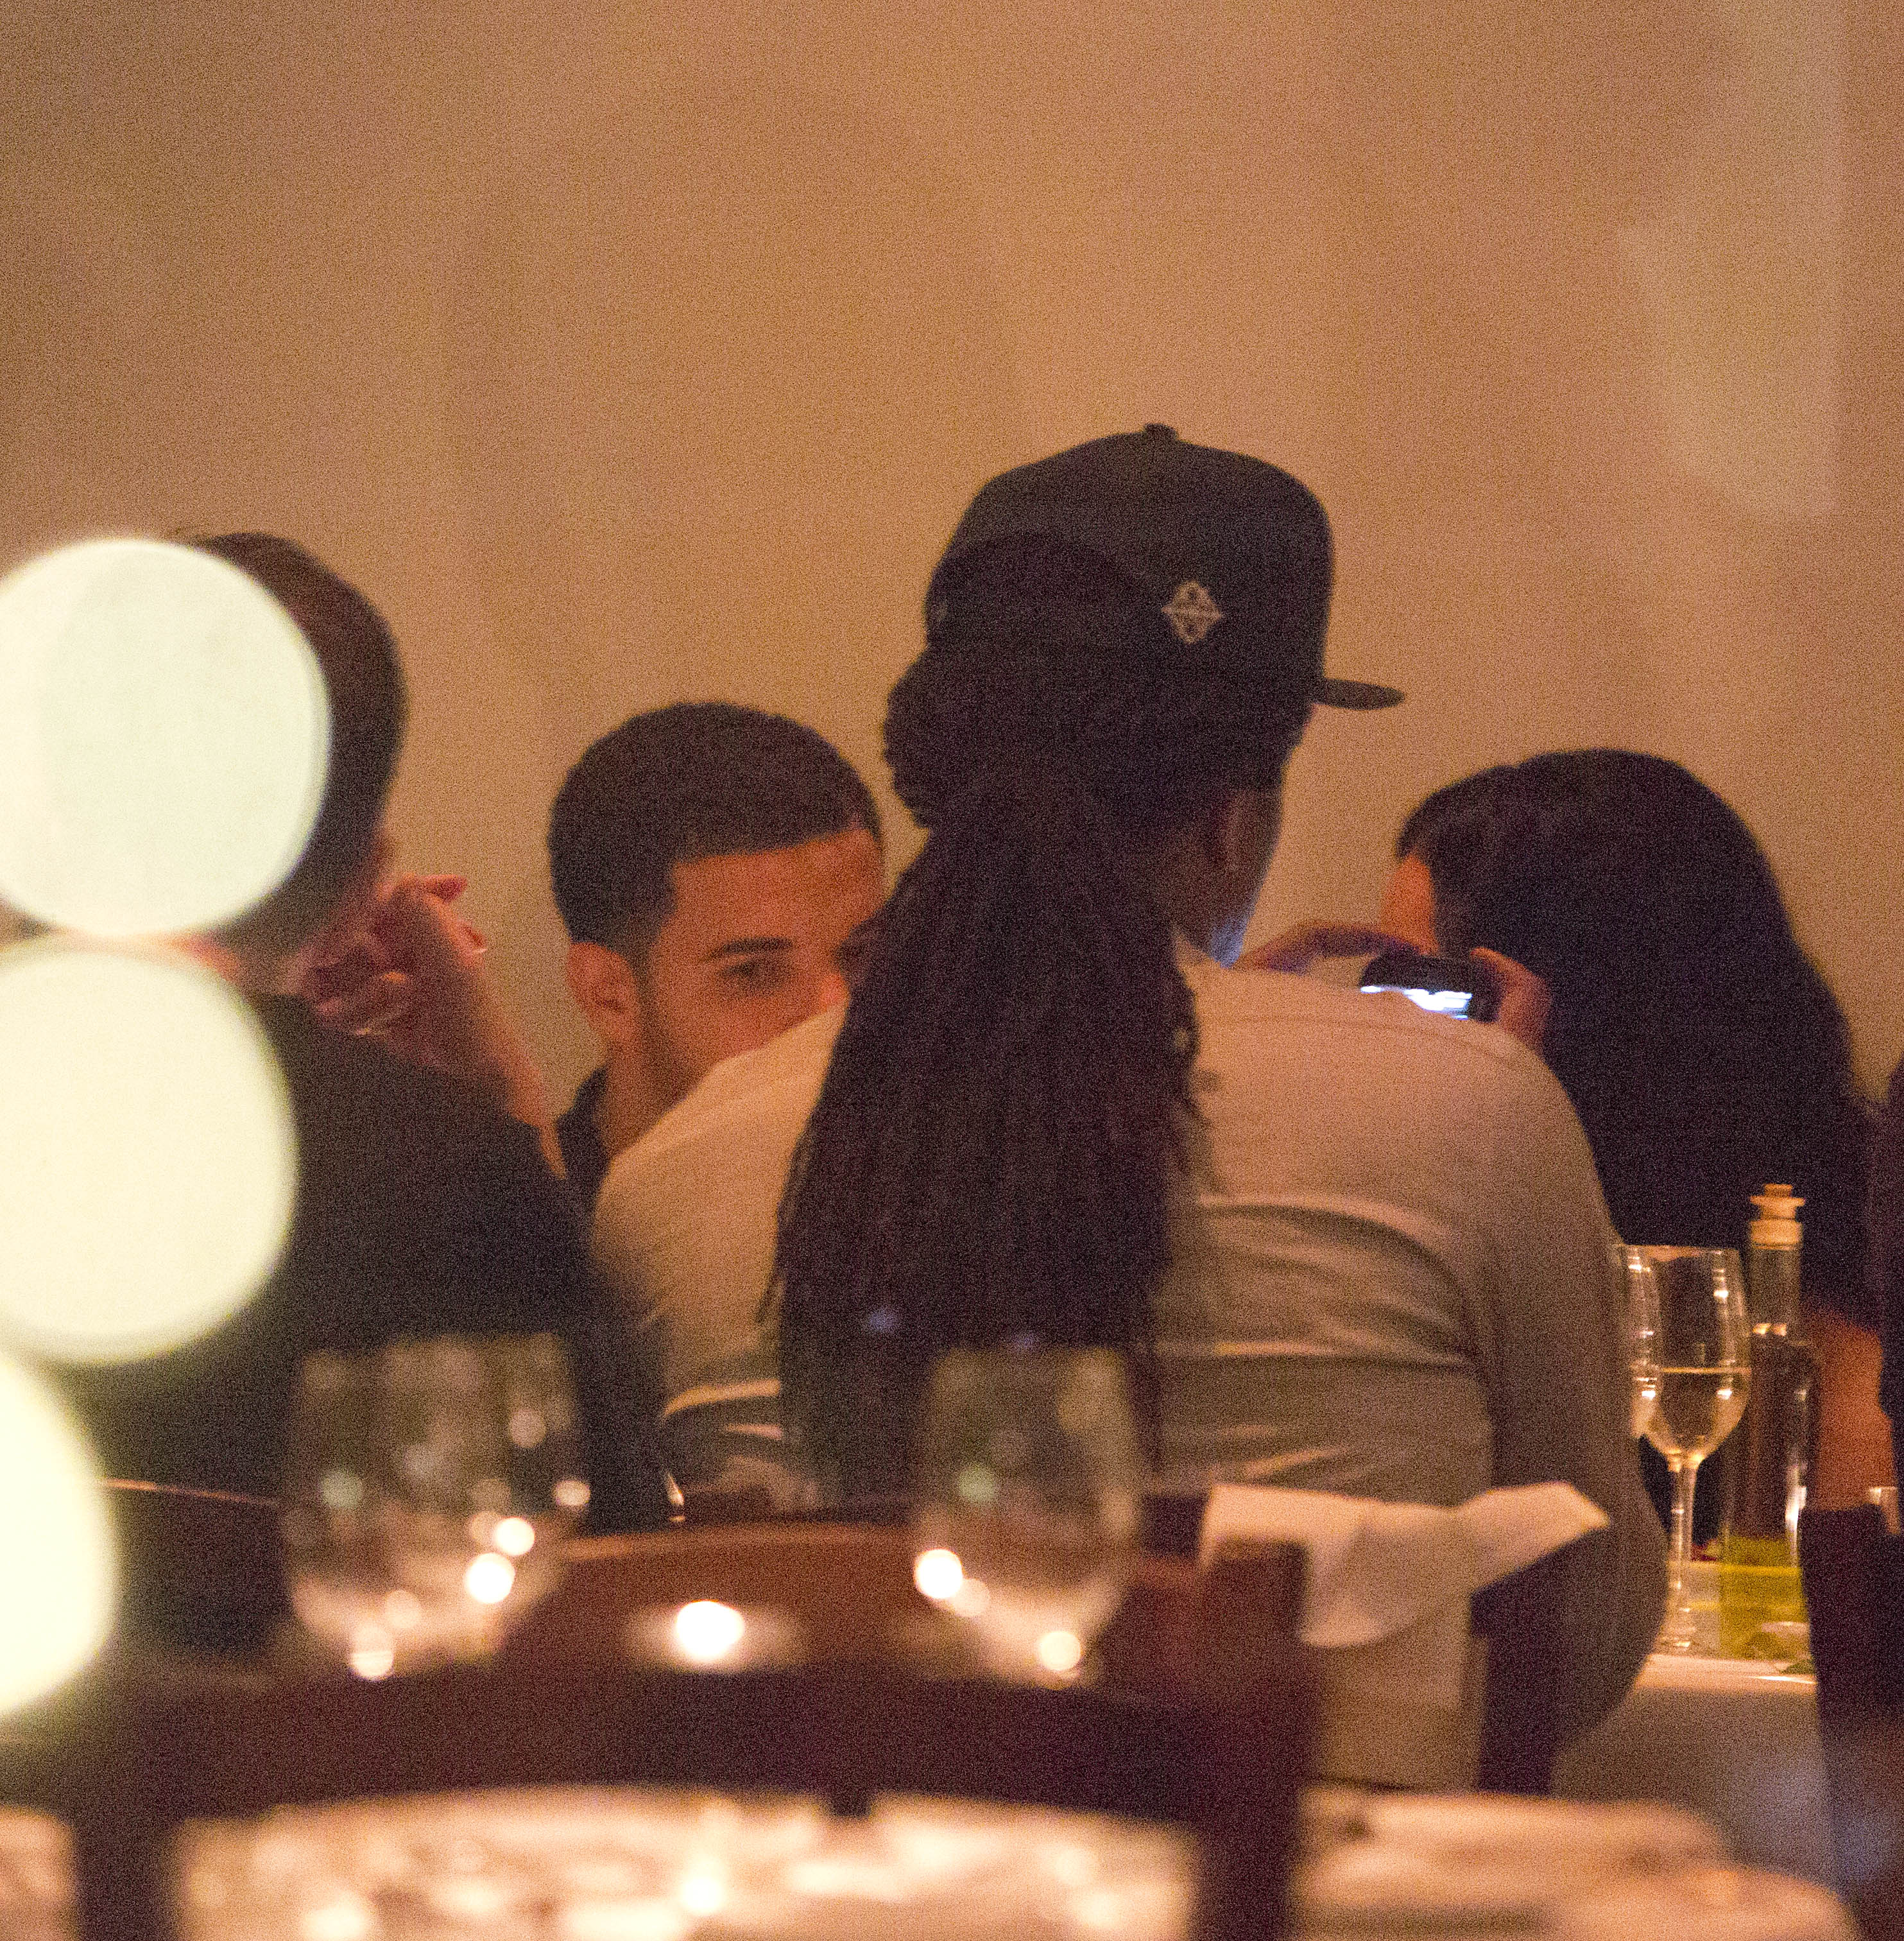 Drake and Rihanna share an intimate dinner together as they celebrate friend Melissa's birthday at Giorgio Baldi in Santa Monica, CA